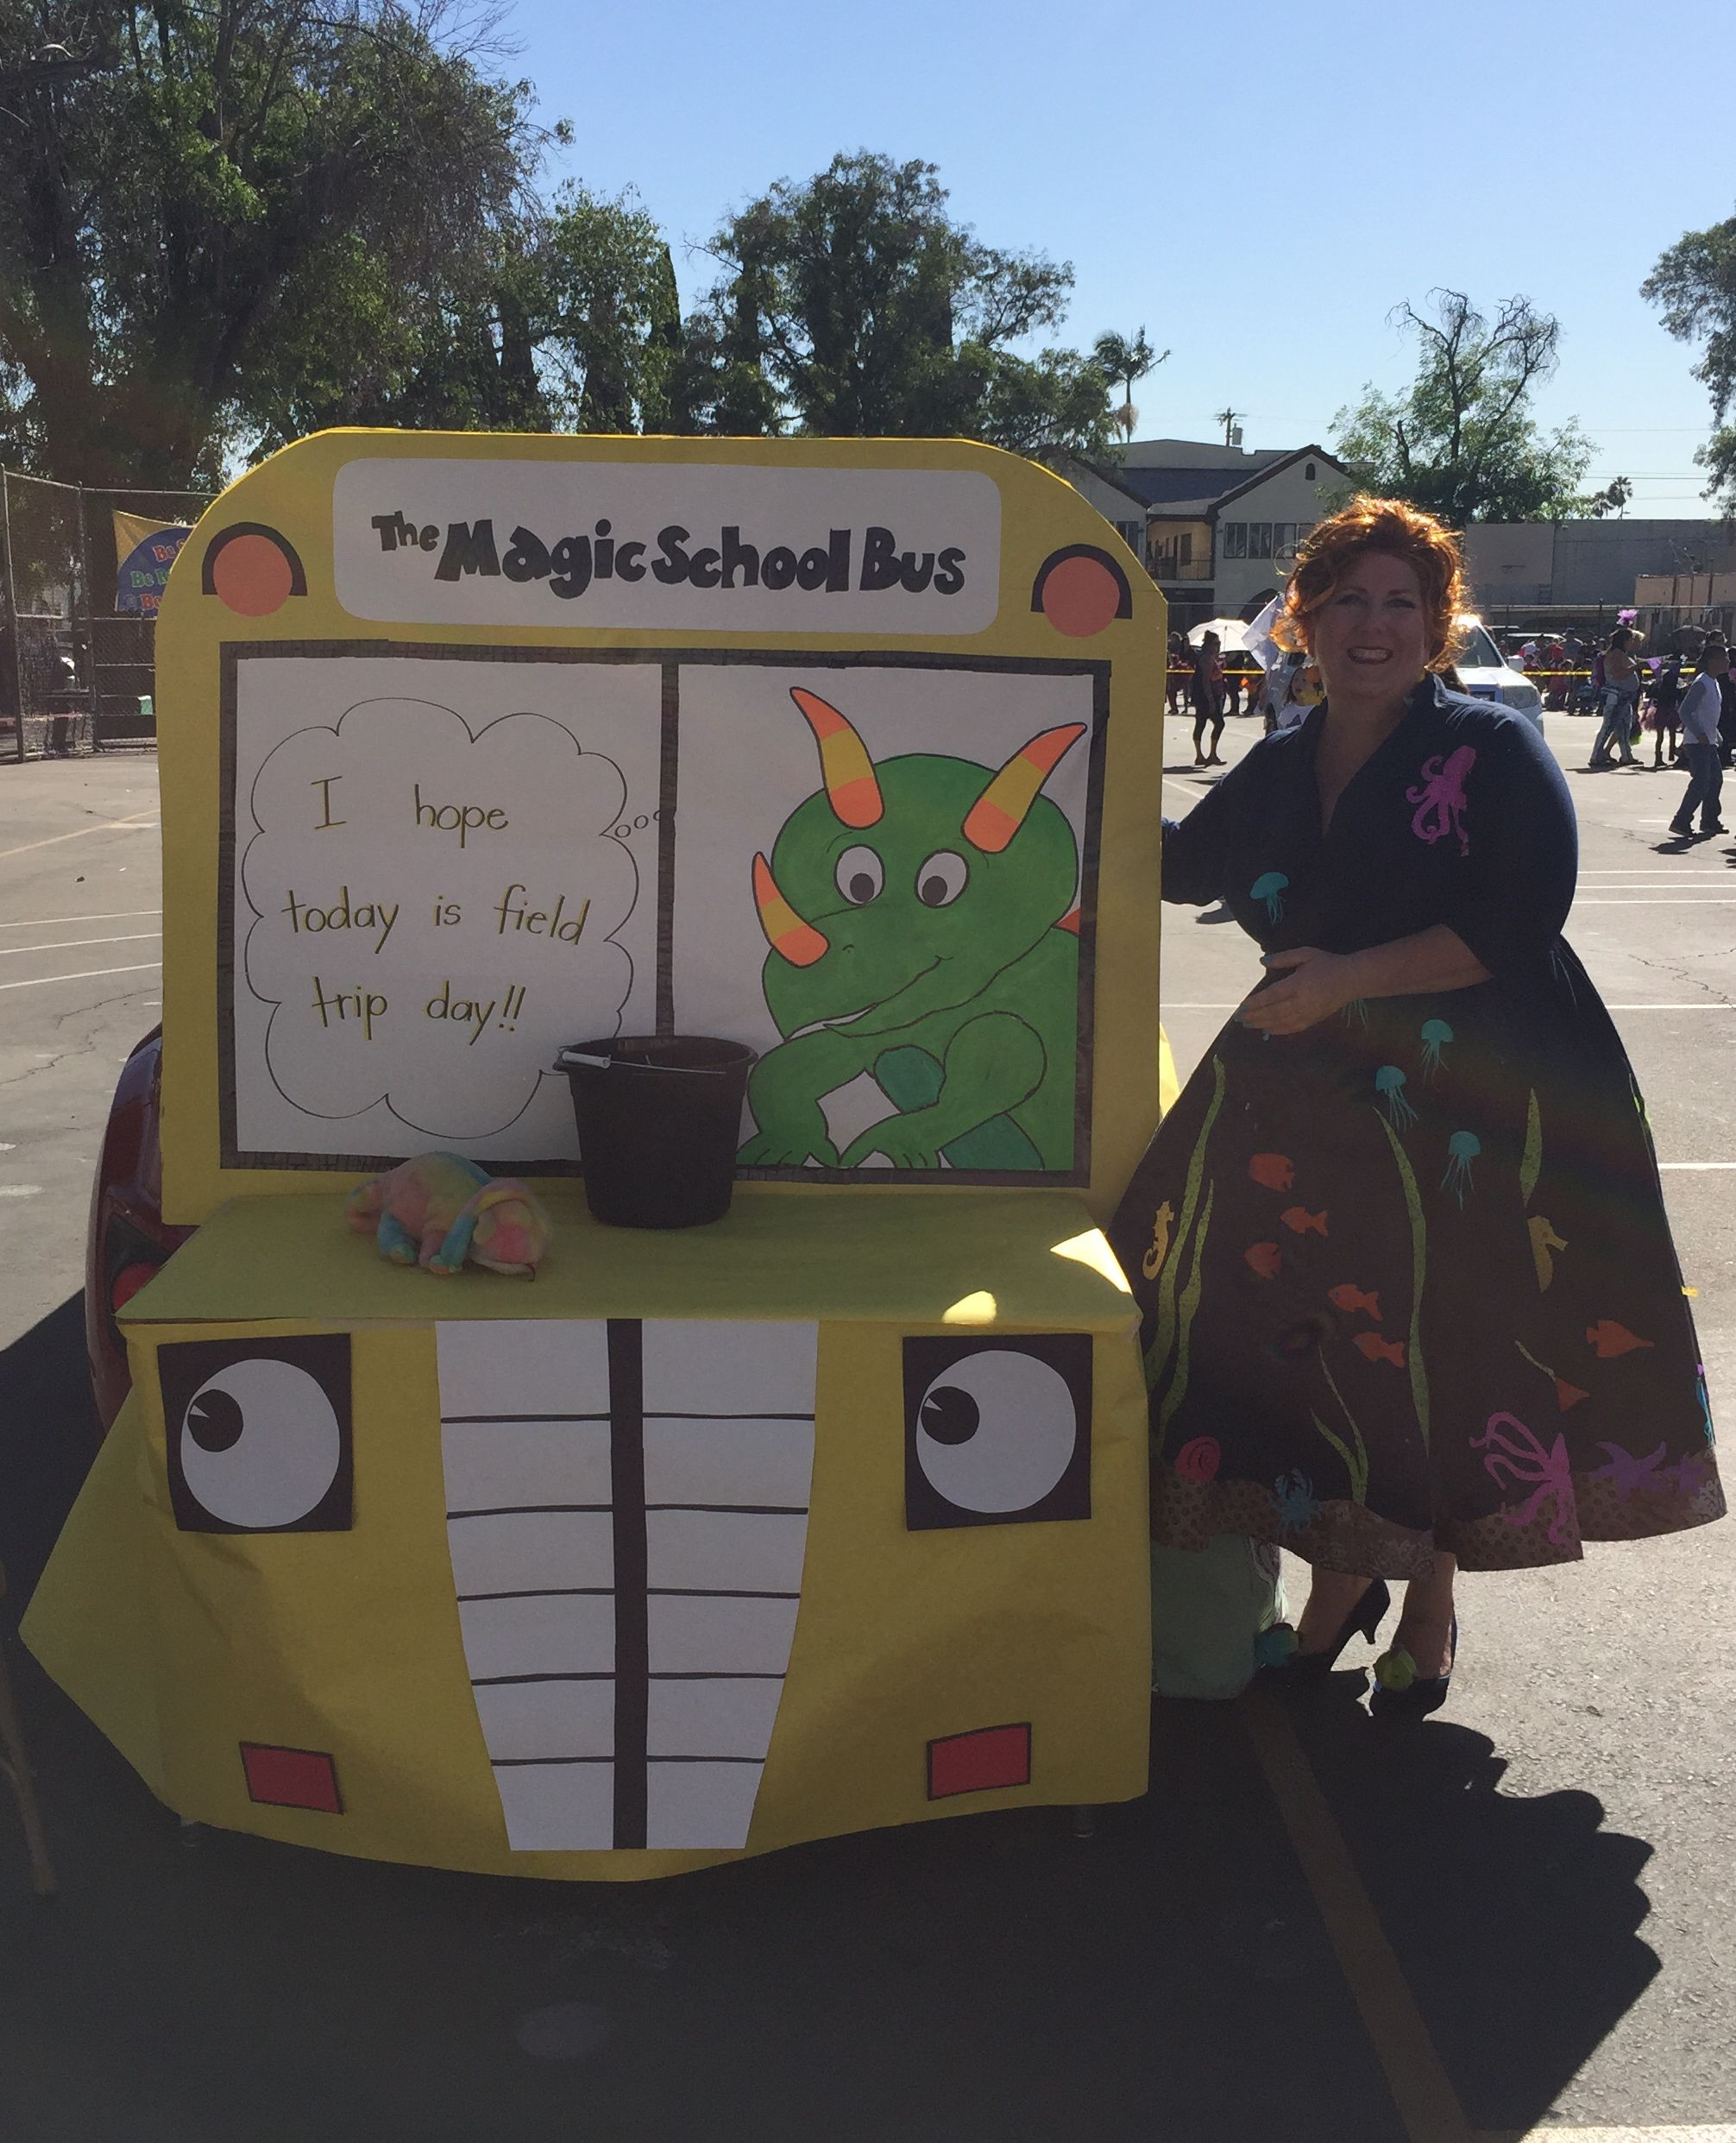 Magic School Bus Trunk Or Treat With Images Truck Or Treat